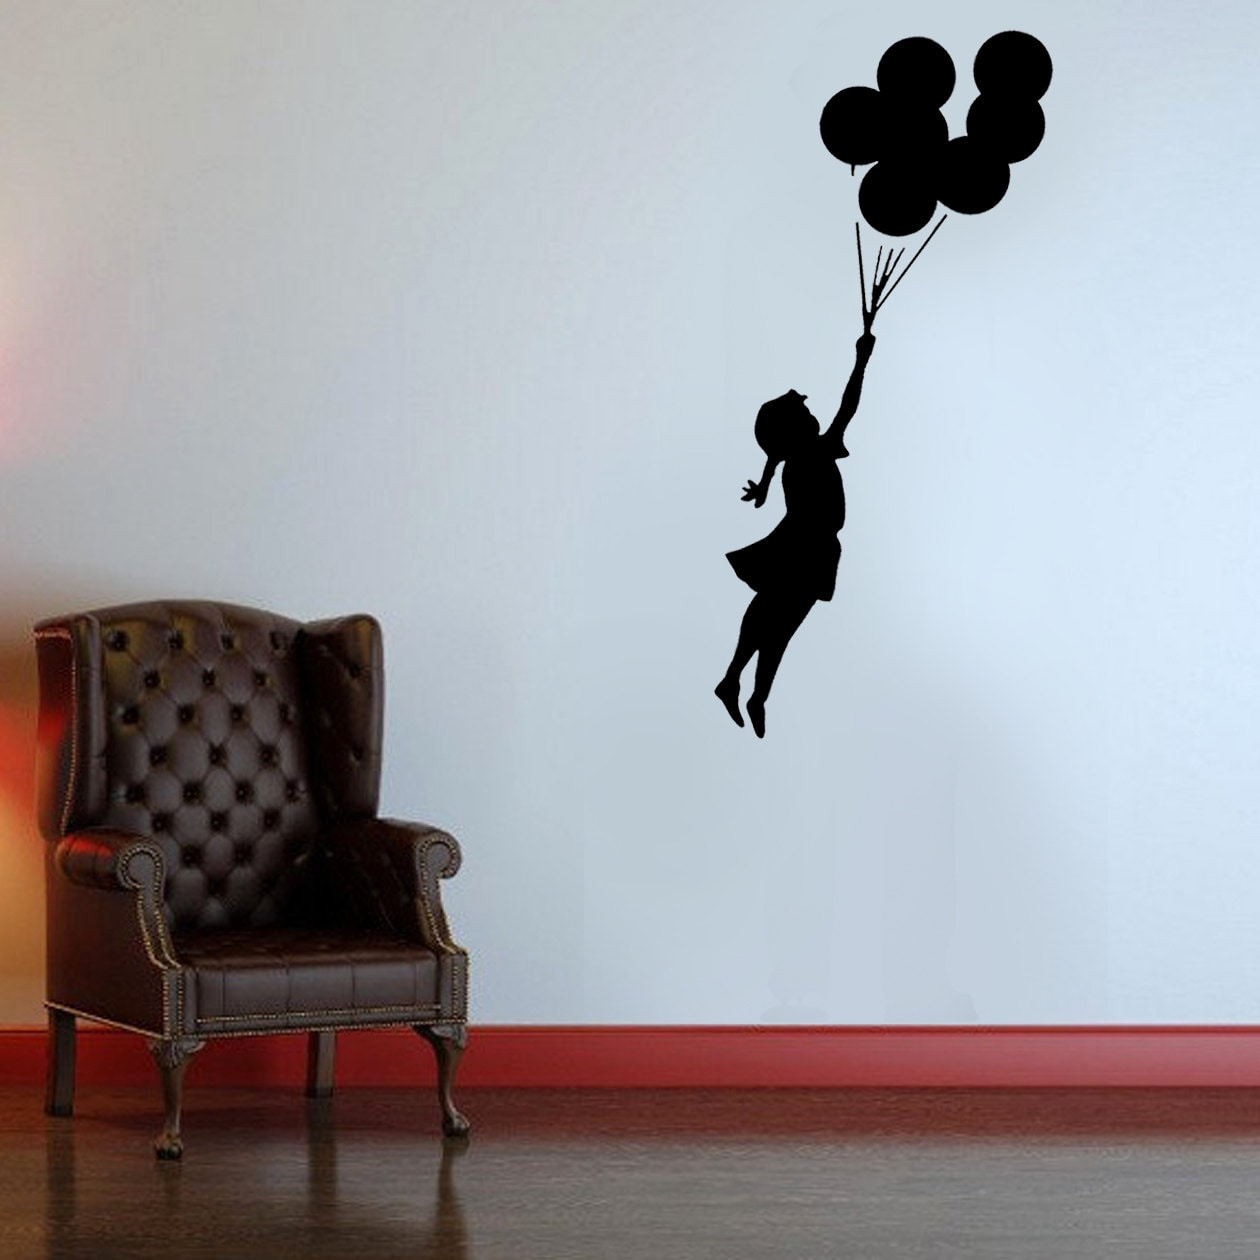 Banksy stencil flying balloon girl girl with balloons banksy description paint this banksy flying balloon girl stencil on any wall amipublicfo Image collections